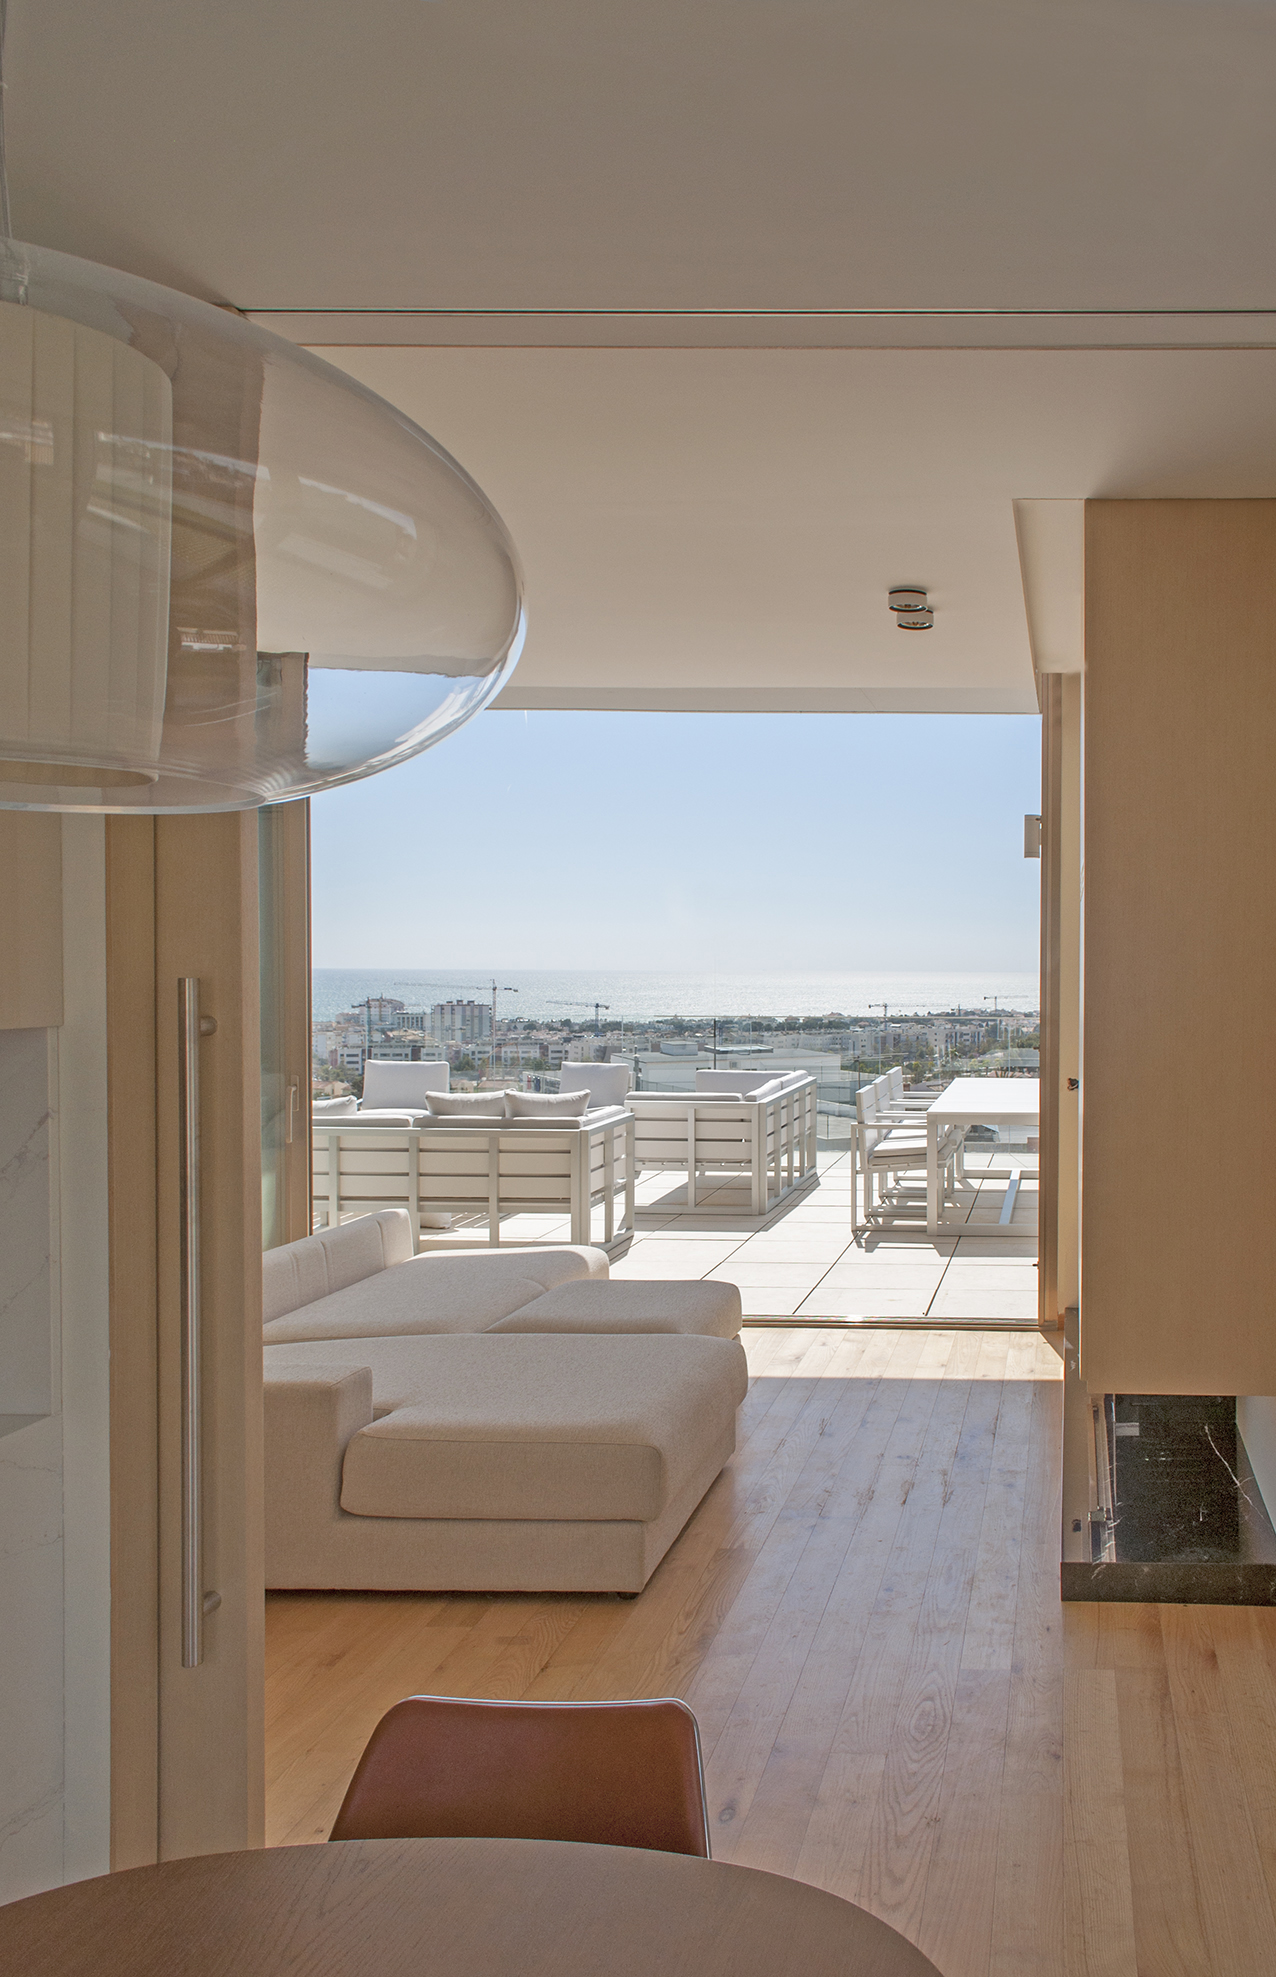 20-rardo-architects-houses-in-sitges-interior-design-living-dining-room-sea-view-sofa